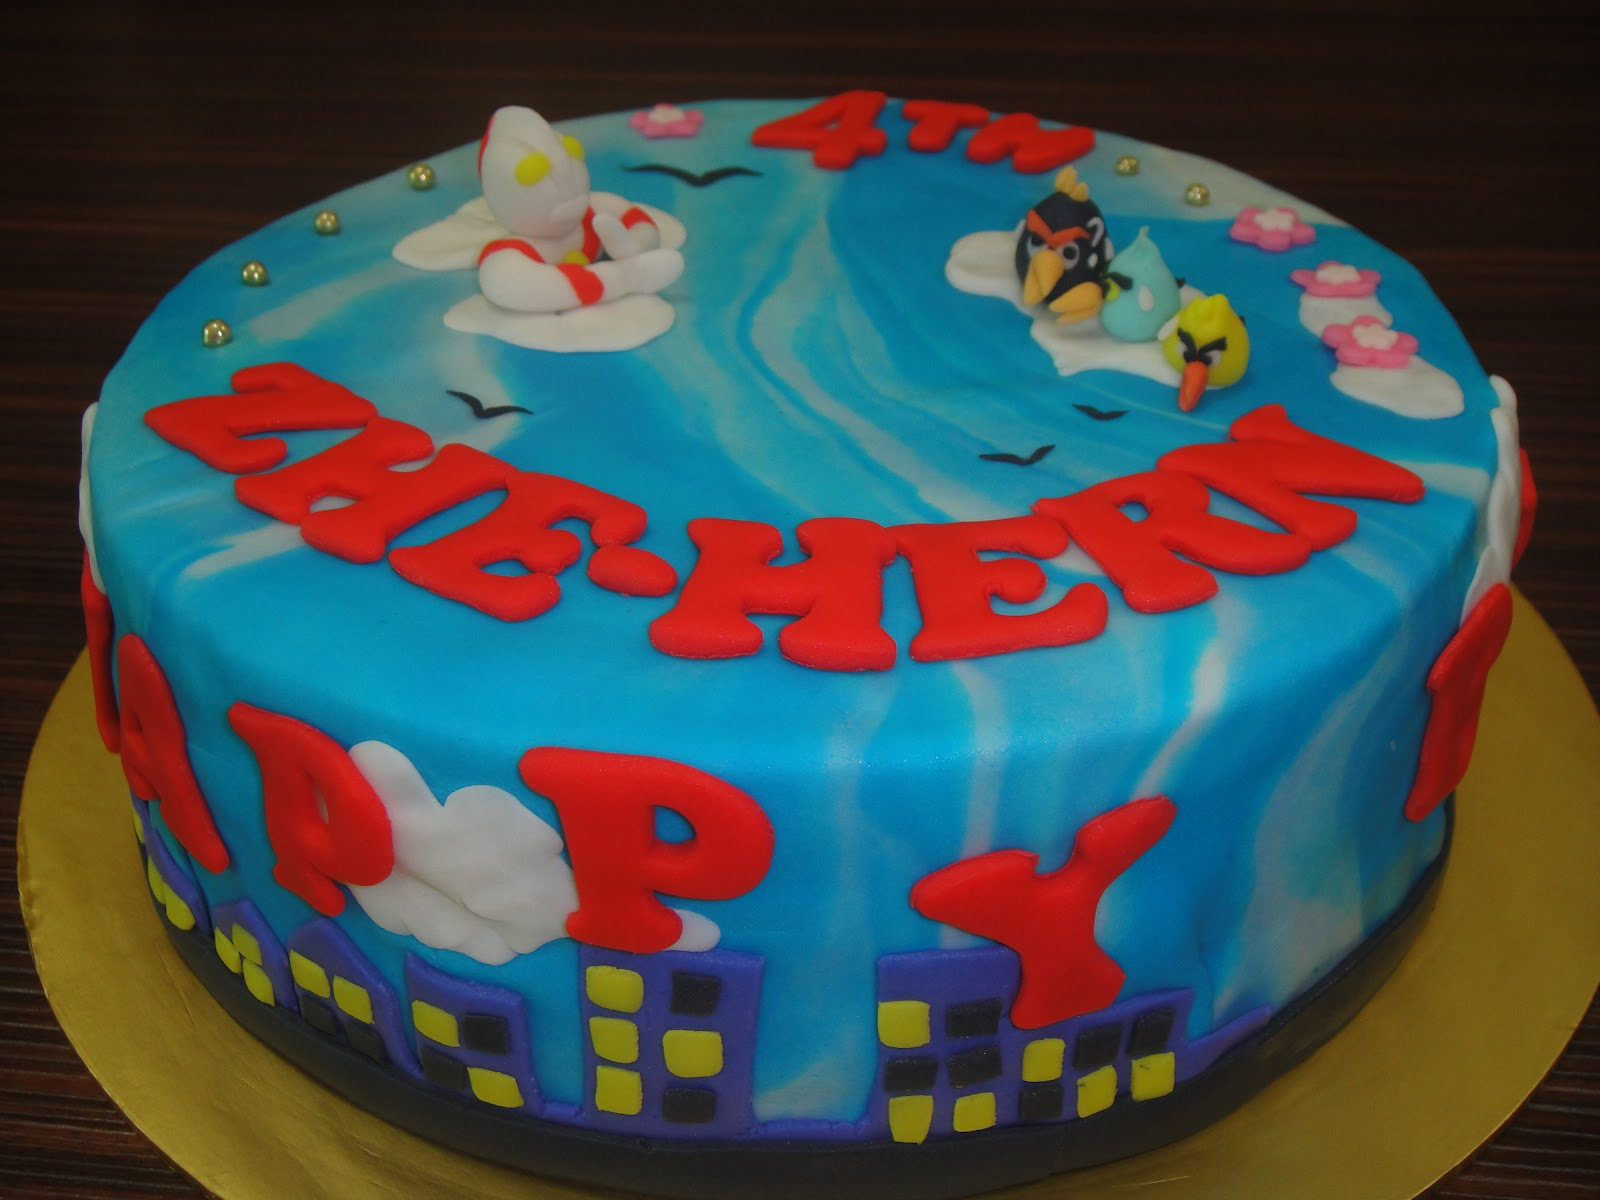 YESHomemadeBakery Ultraman Angry Birds Fondant Birthday Cake